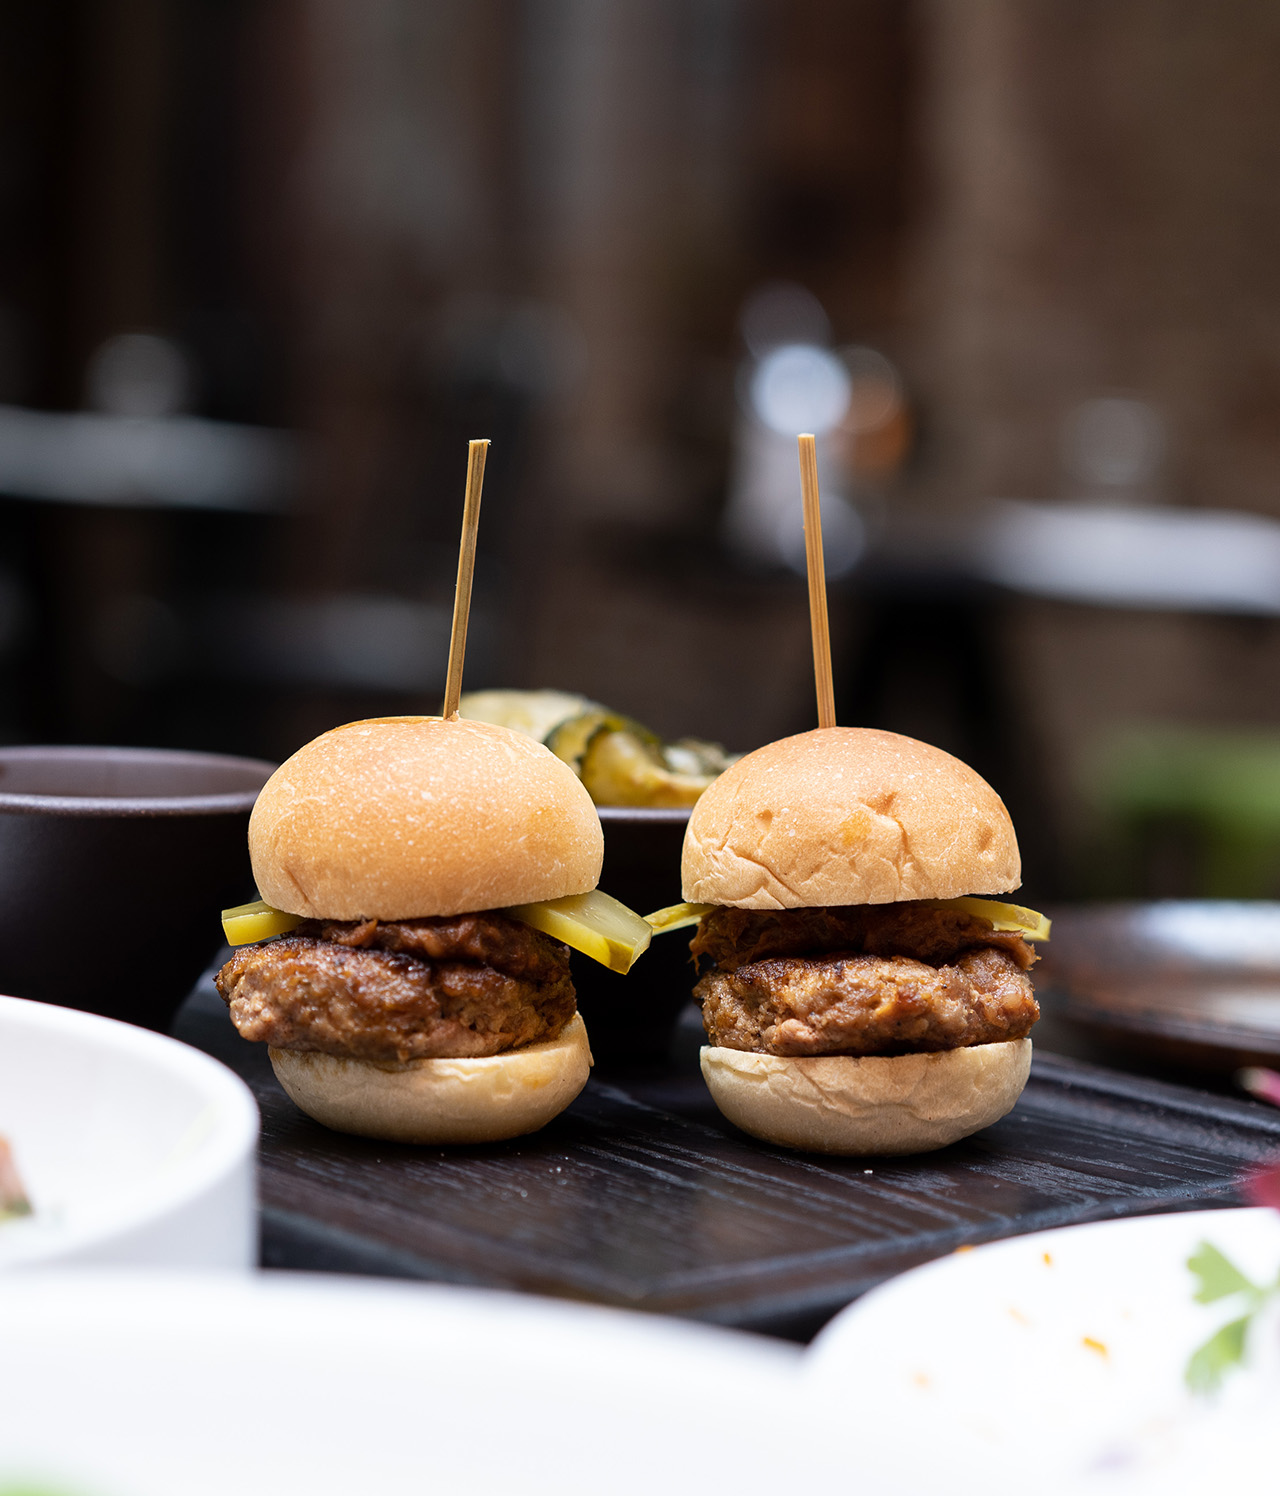 Bite sized Wagyu and foie gras burgers.